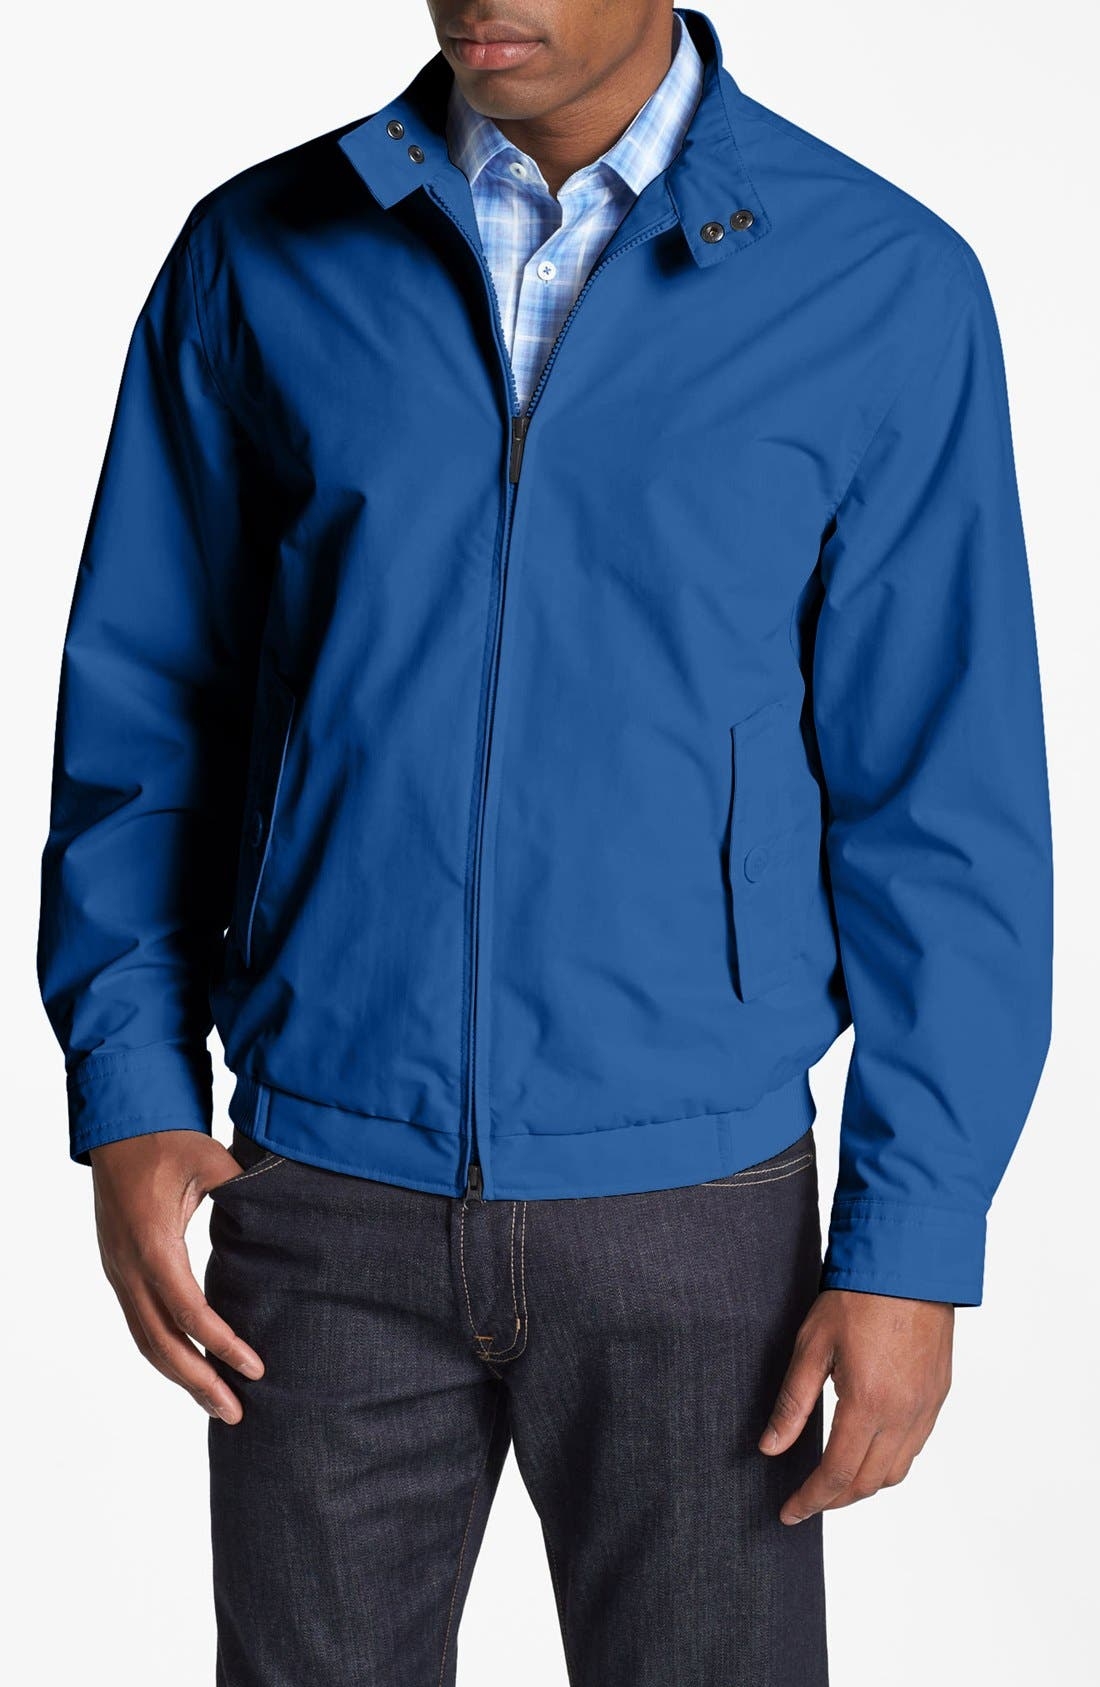 Main Image - RAINFOREST Lightweight Jacket